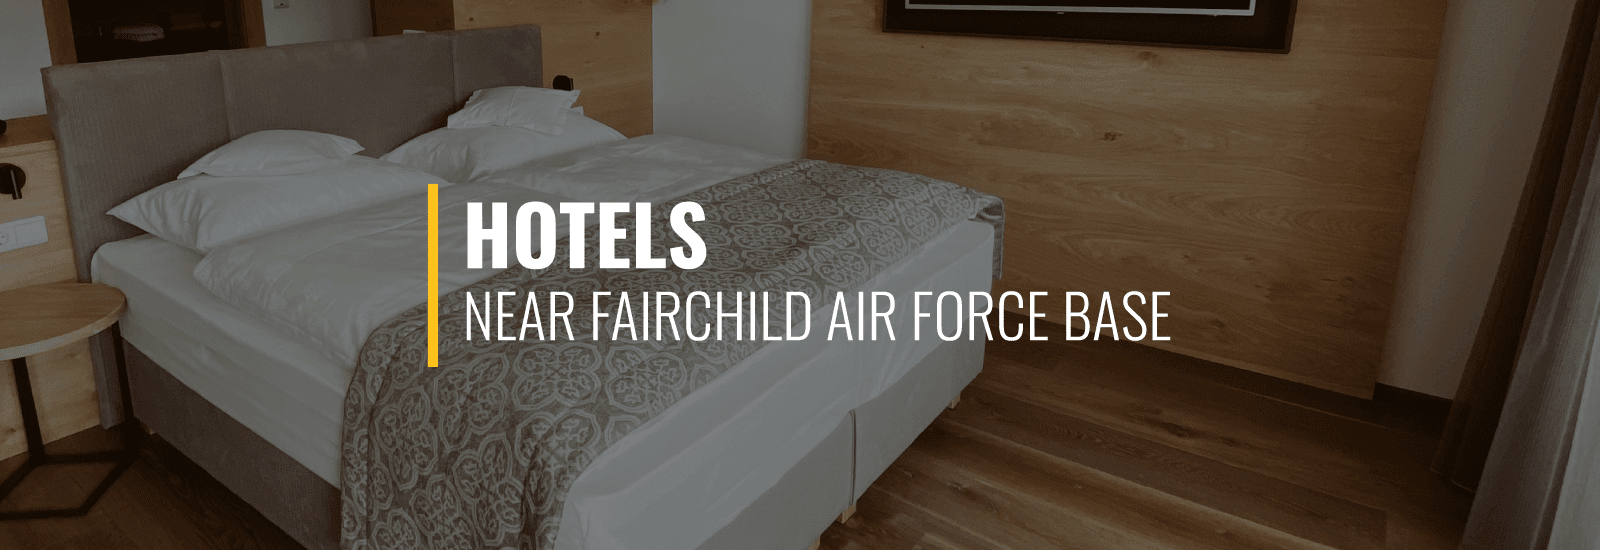 Fairchild AFB Hotels